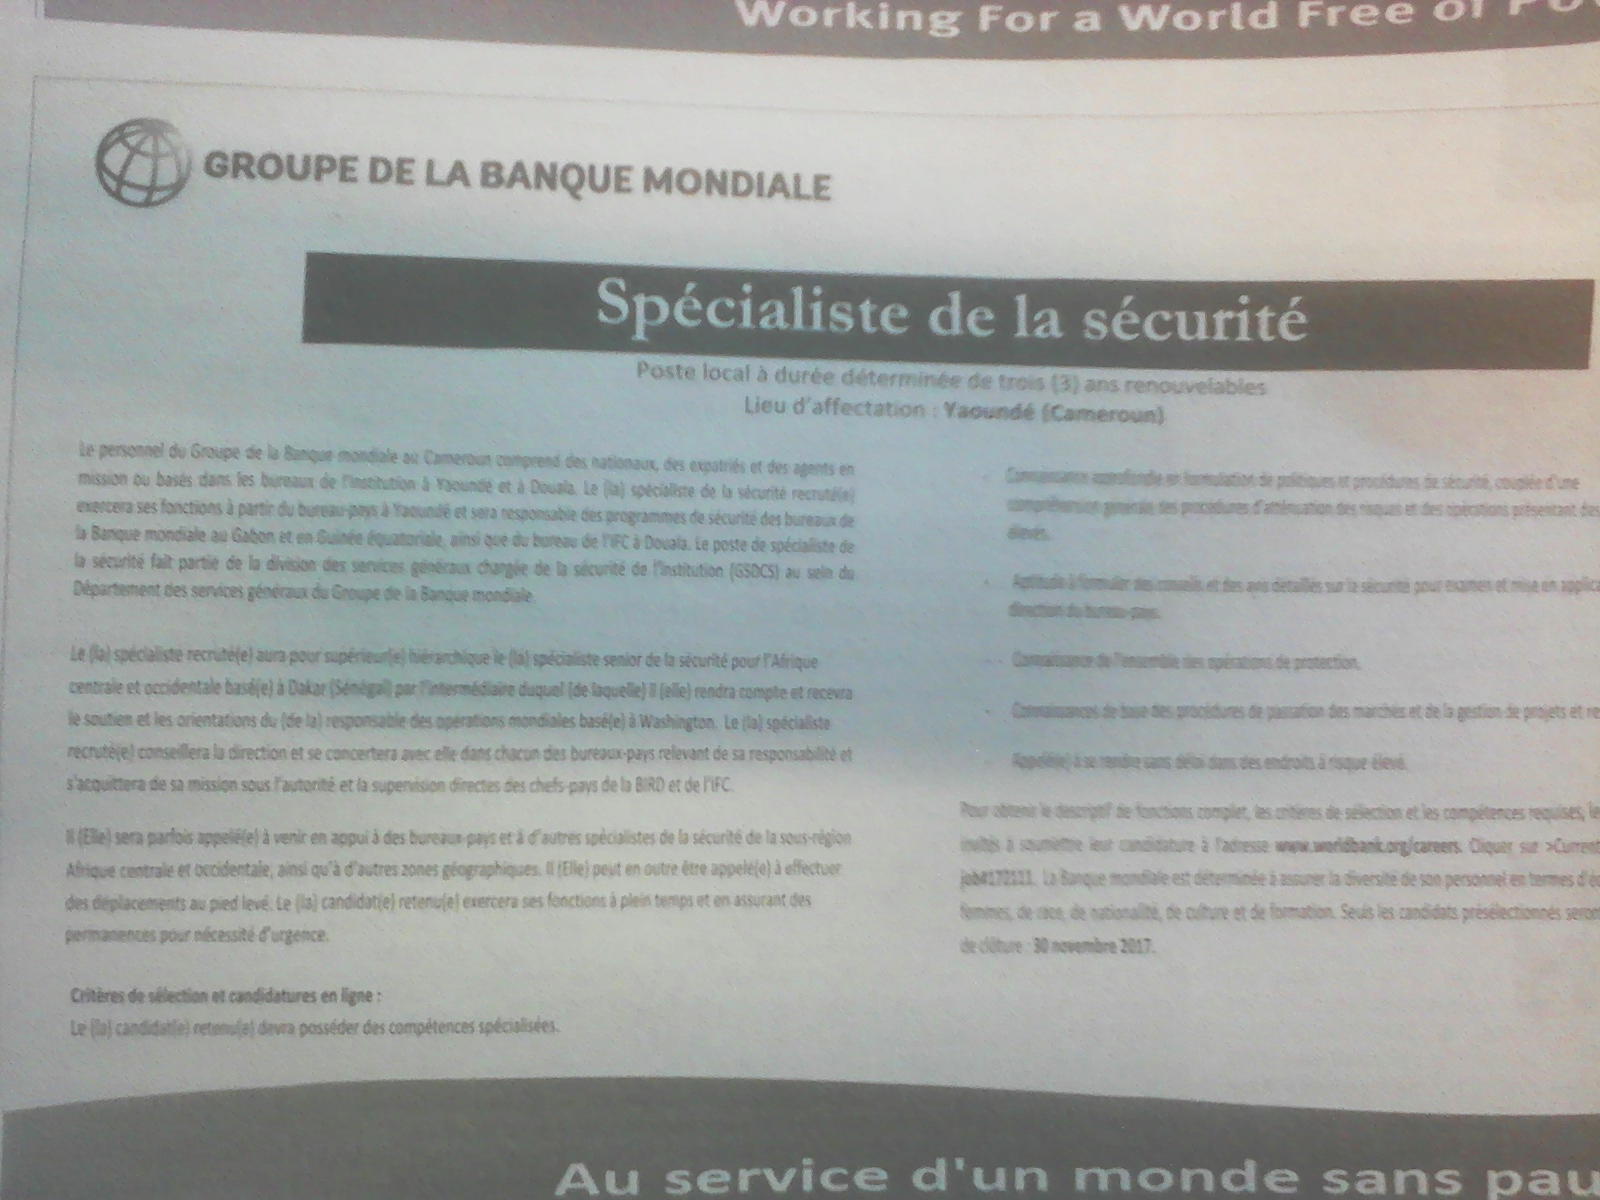 avis de recrutement   sp u00e9cialiste de la s u00e9curit u00e9  u00e0 groupe de la banque mondiale   the world bank